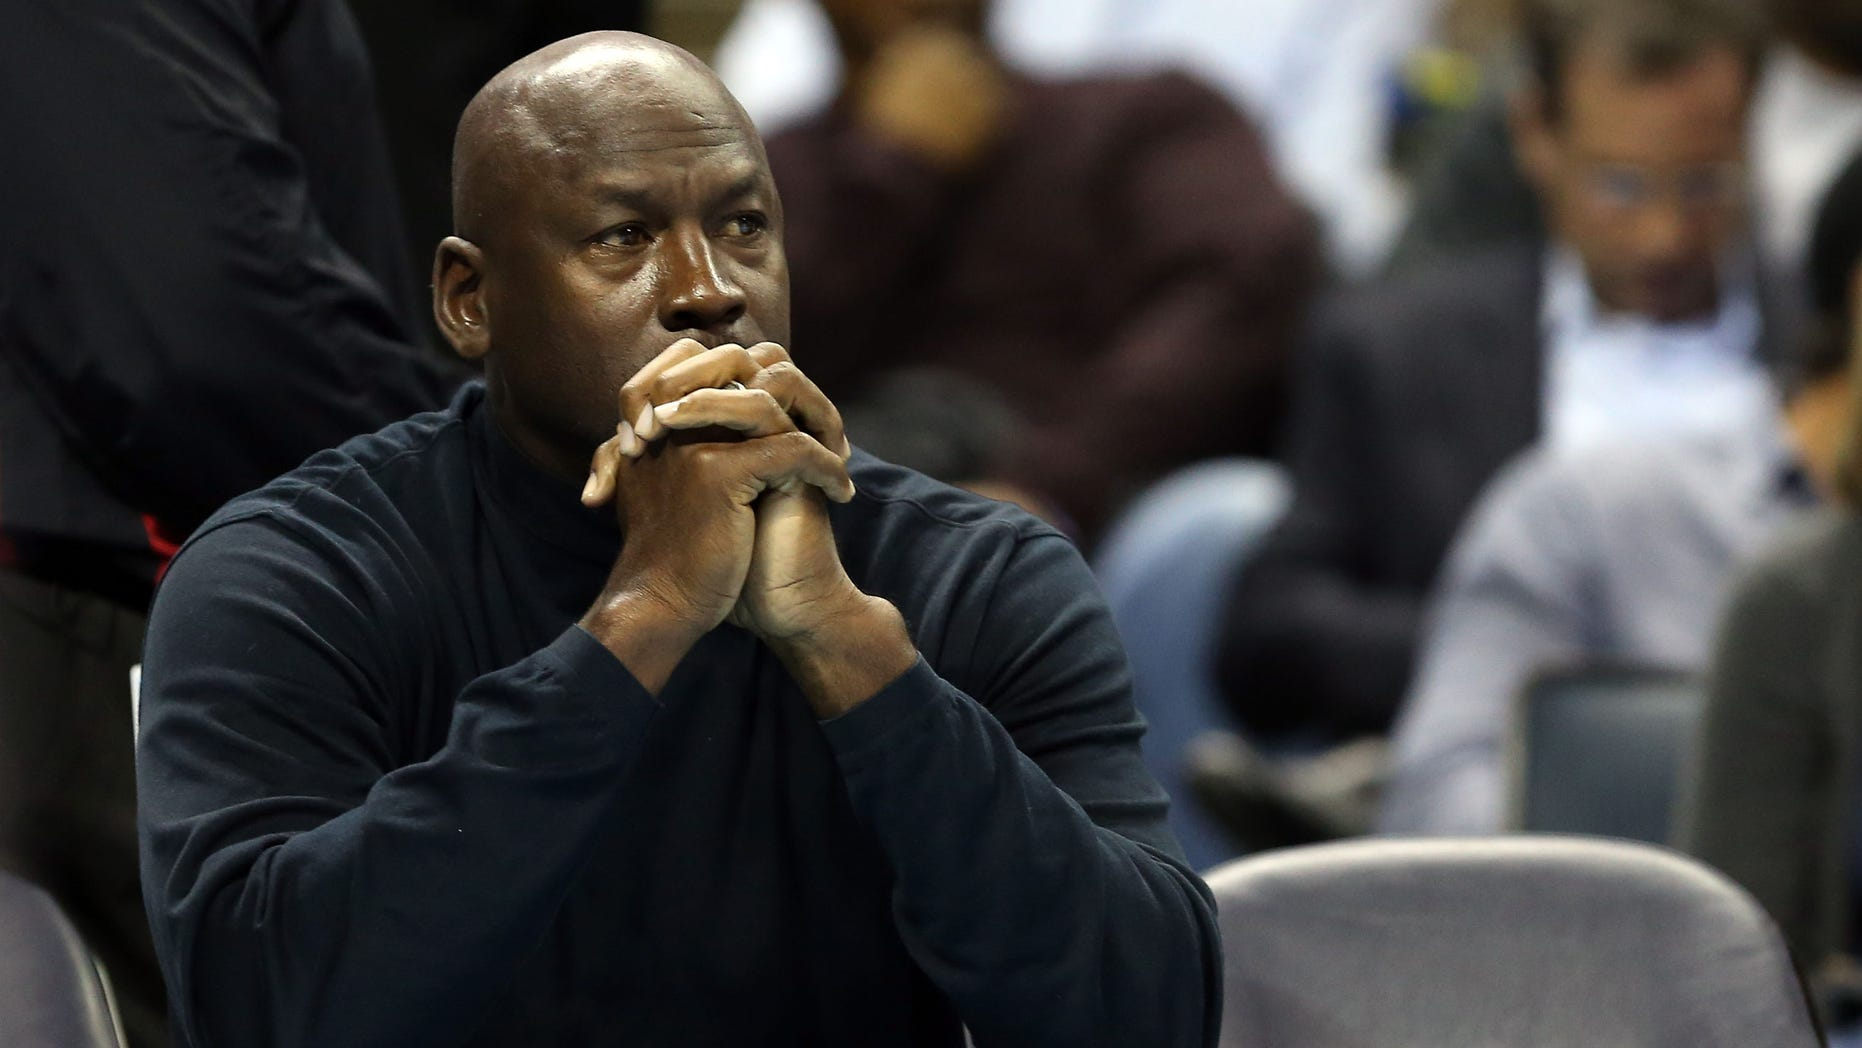 CHARLOTTE, NC - JANUARY 15:  Michael Jordan, owner of the Charlotte Bobcats watches on during their game against the Indiana Pacers at Time Warner Cable Arena on January 15, 2013 in Charlotte, North Carolina.  NOTE TO USER: User expressly acknowledges and agrees that, by downloading and or using this photograph, User is consenting to the terms and conditions of the Getty Images License Agreement.  (Photo by Streeter Lecka/Getty Images)